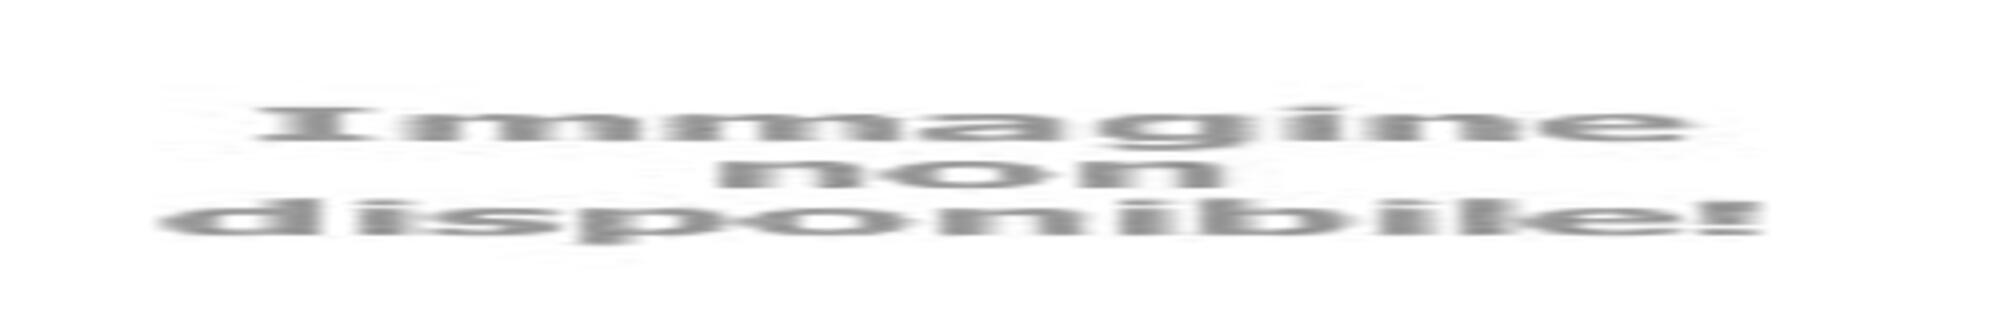 Speciale Beer Attraction Rimini Fiera